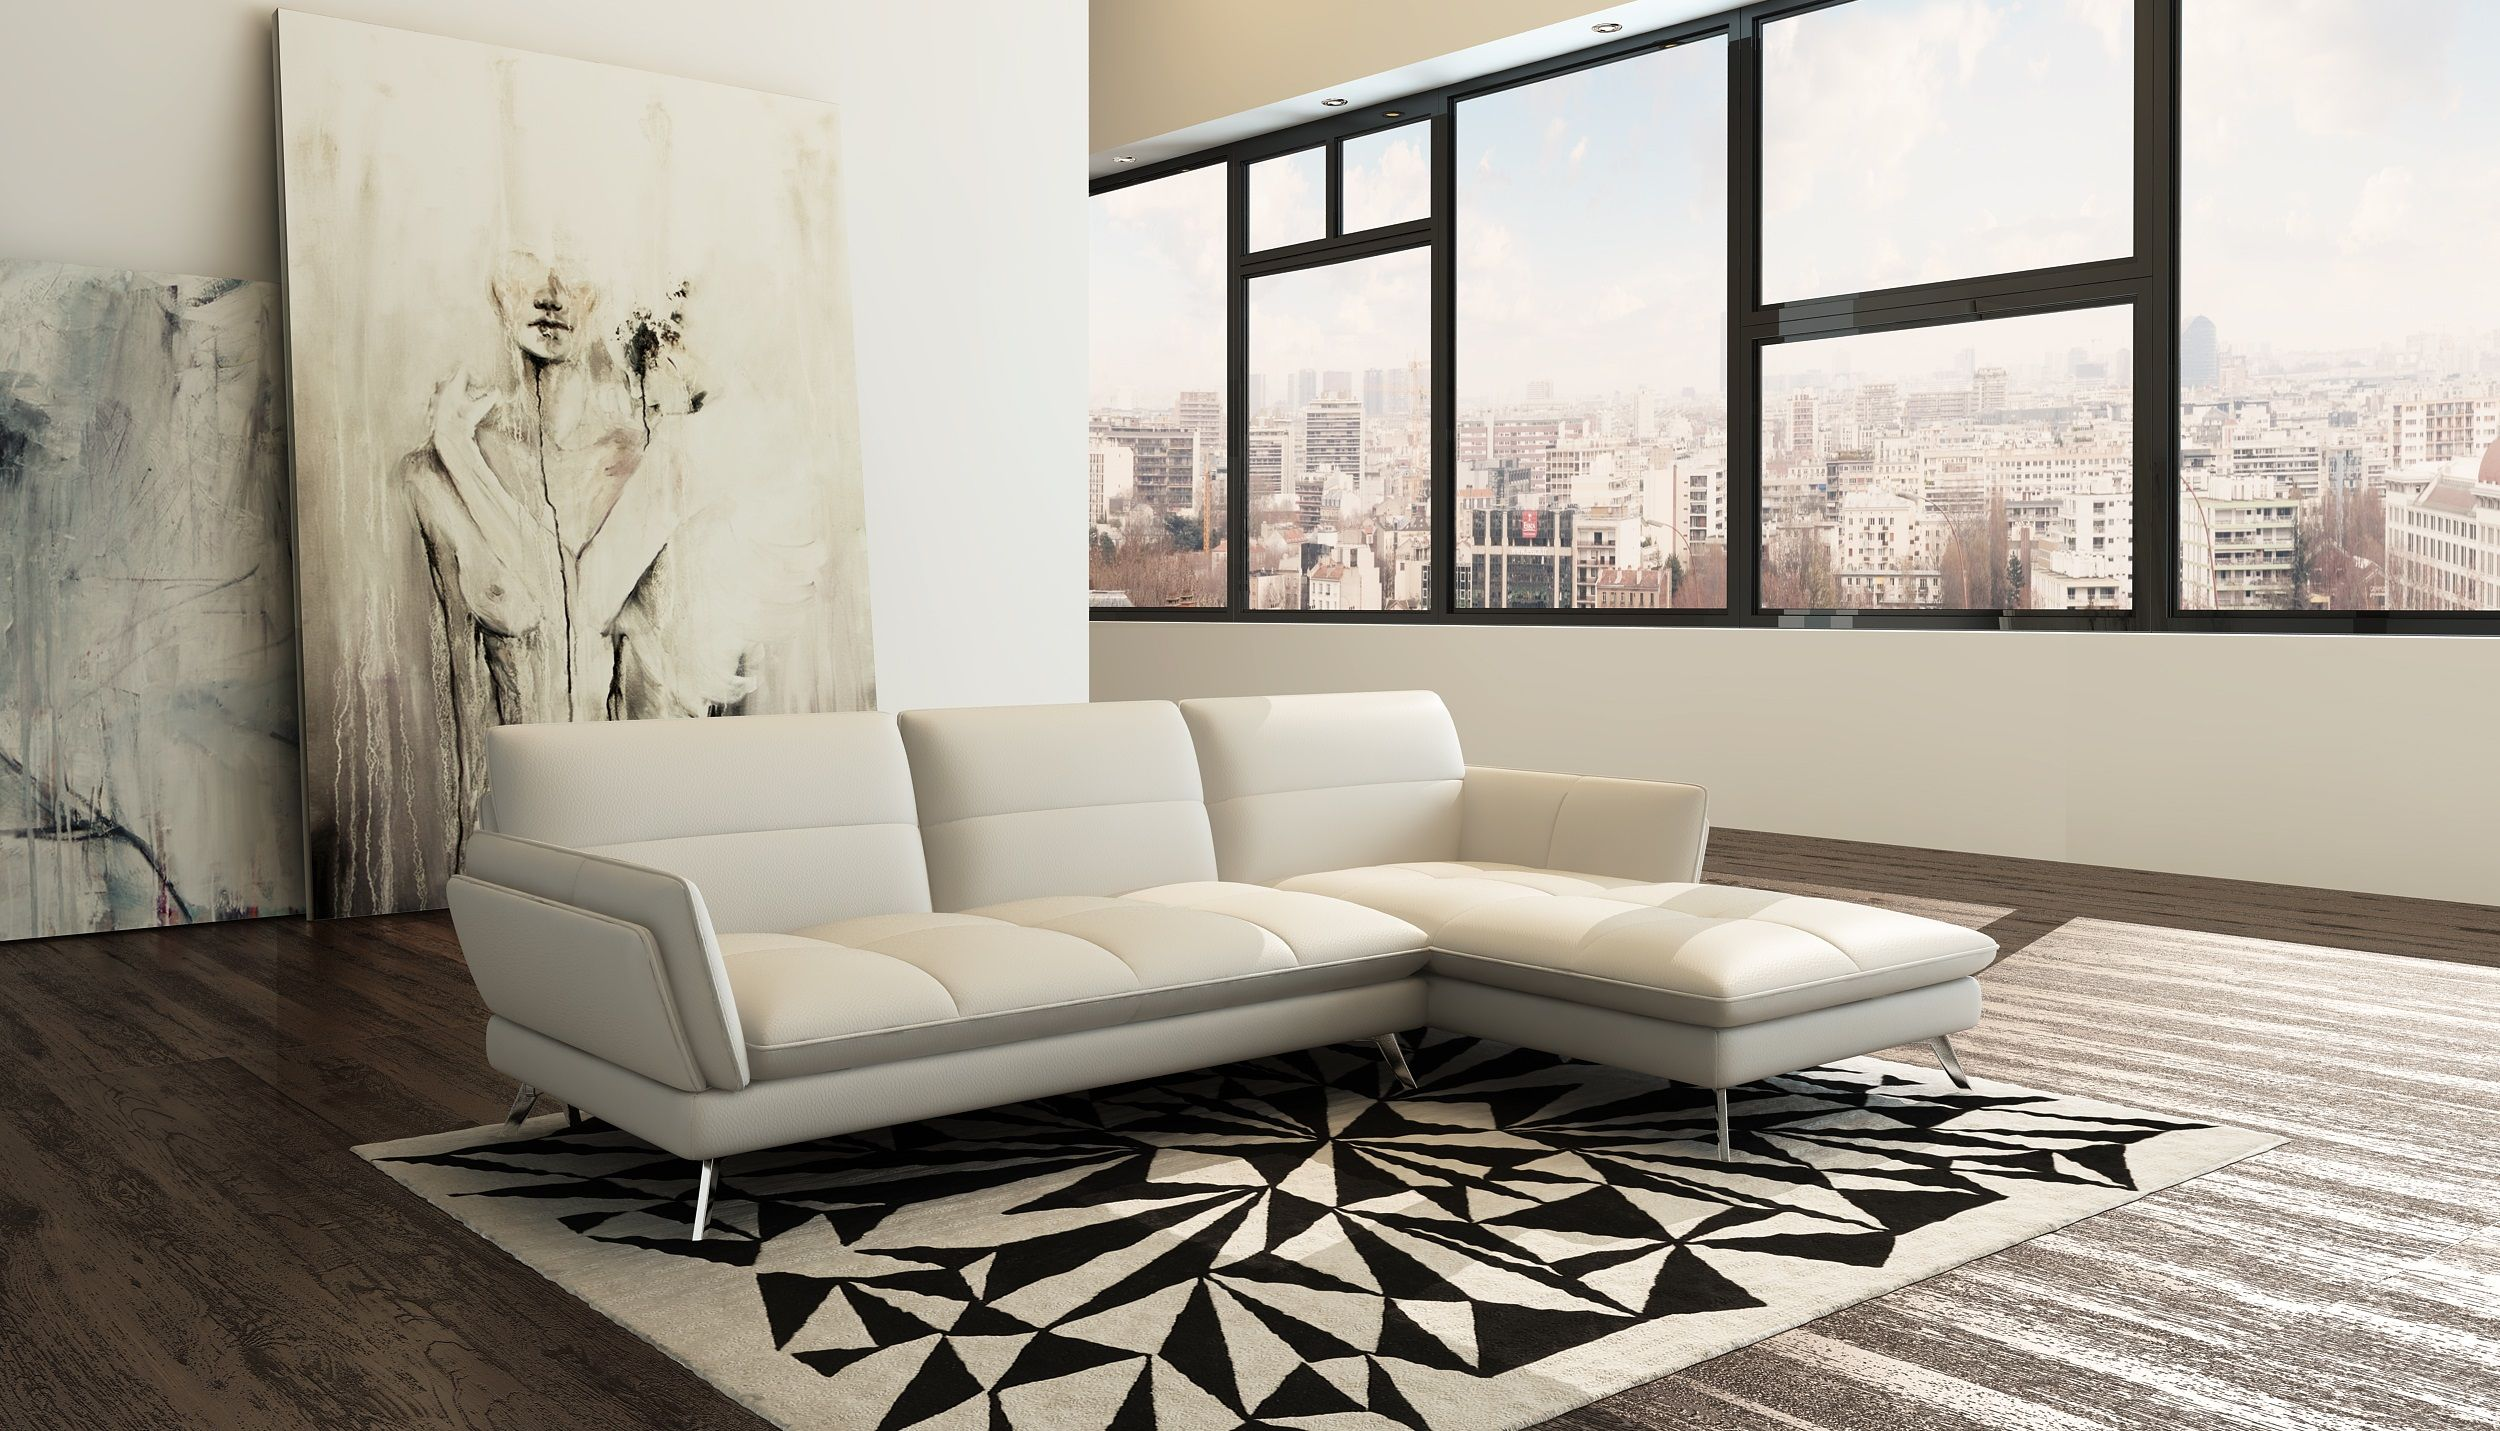 Meubles Ca De Lacroix Design Beautiful Sofas Modern Sofa Scandinavian Sofas